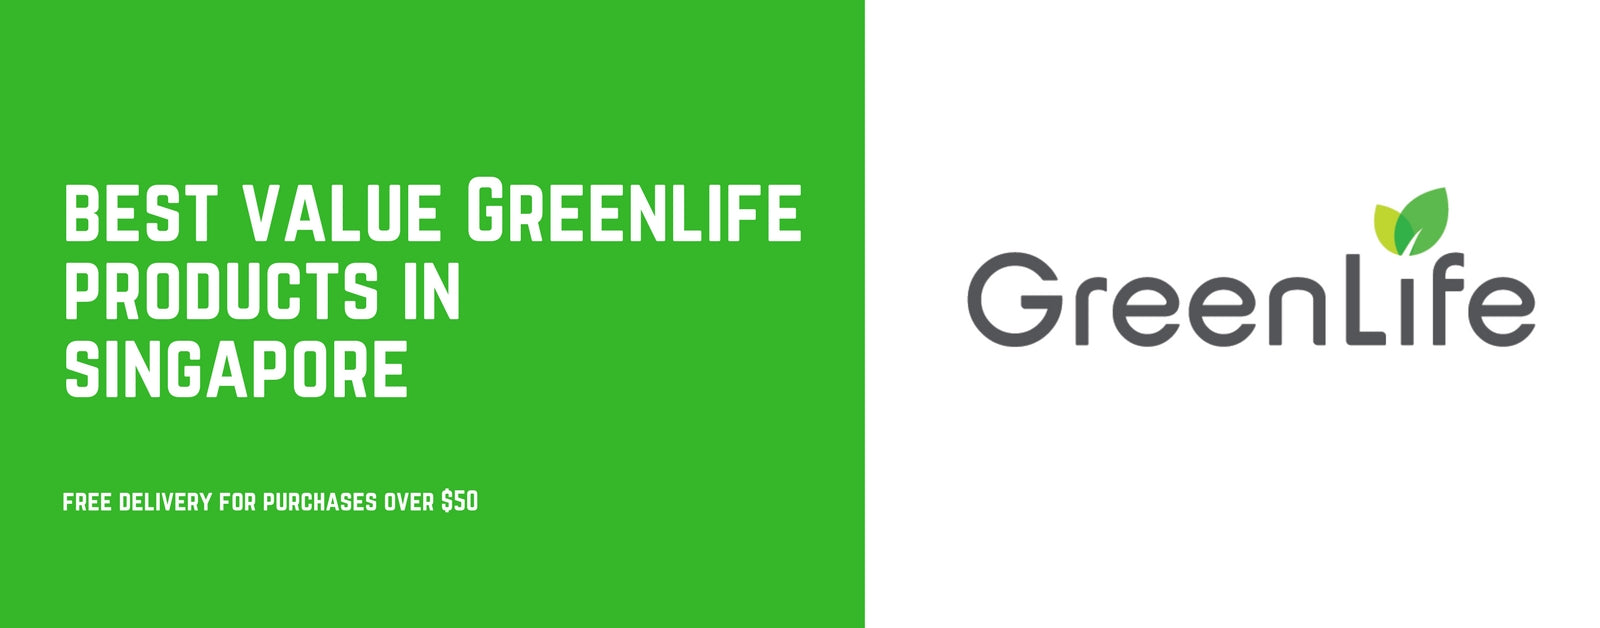 GreenLife Singapore